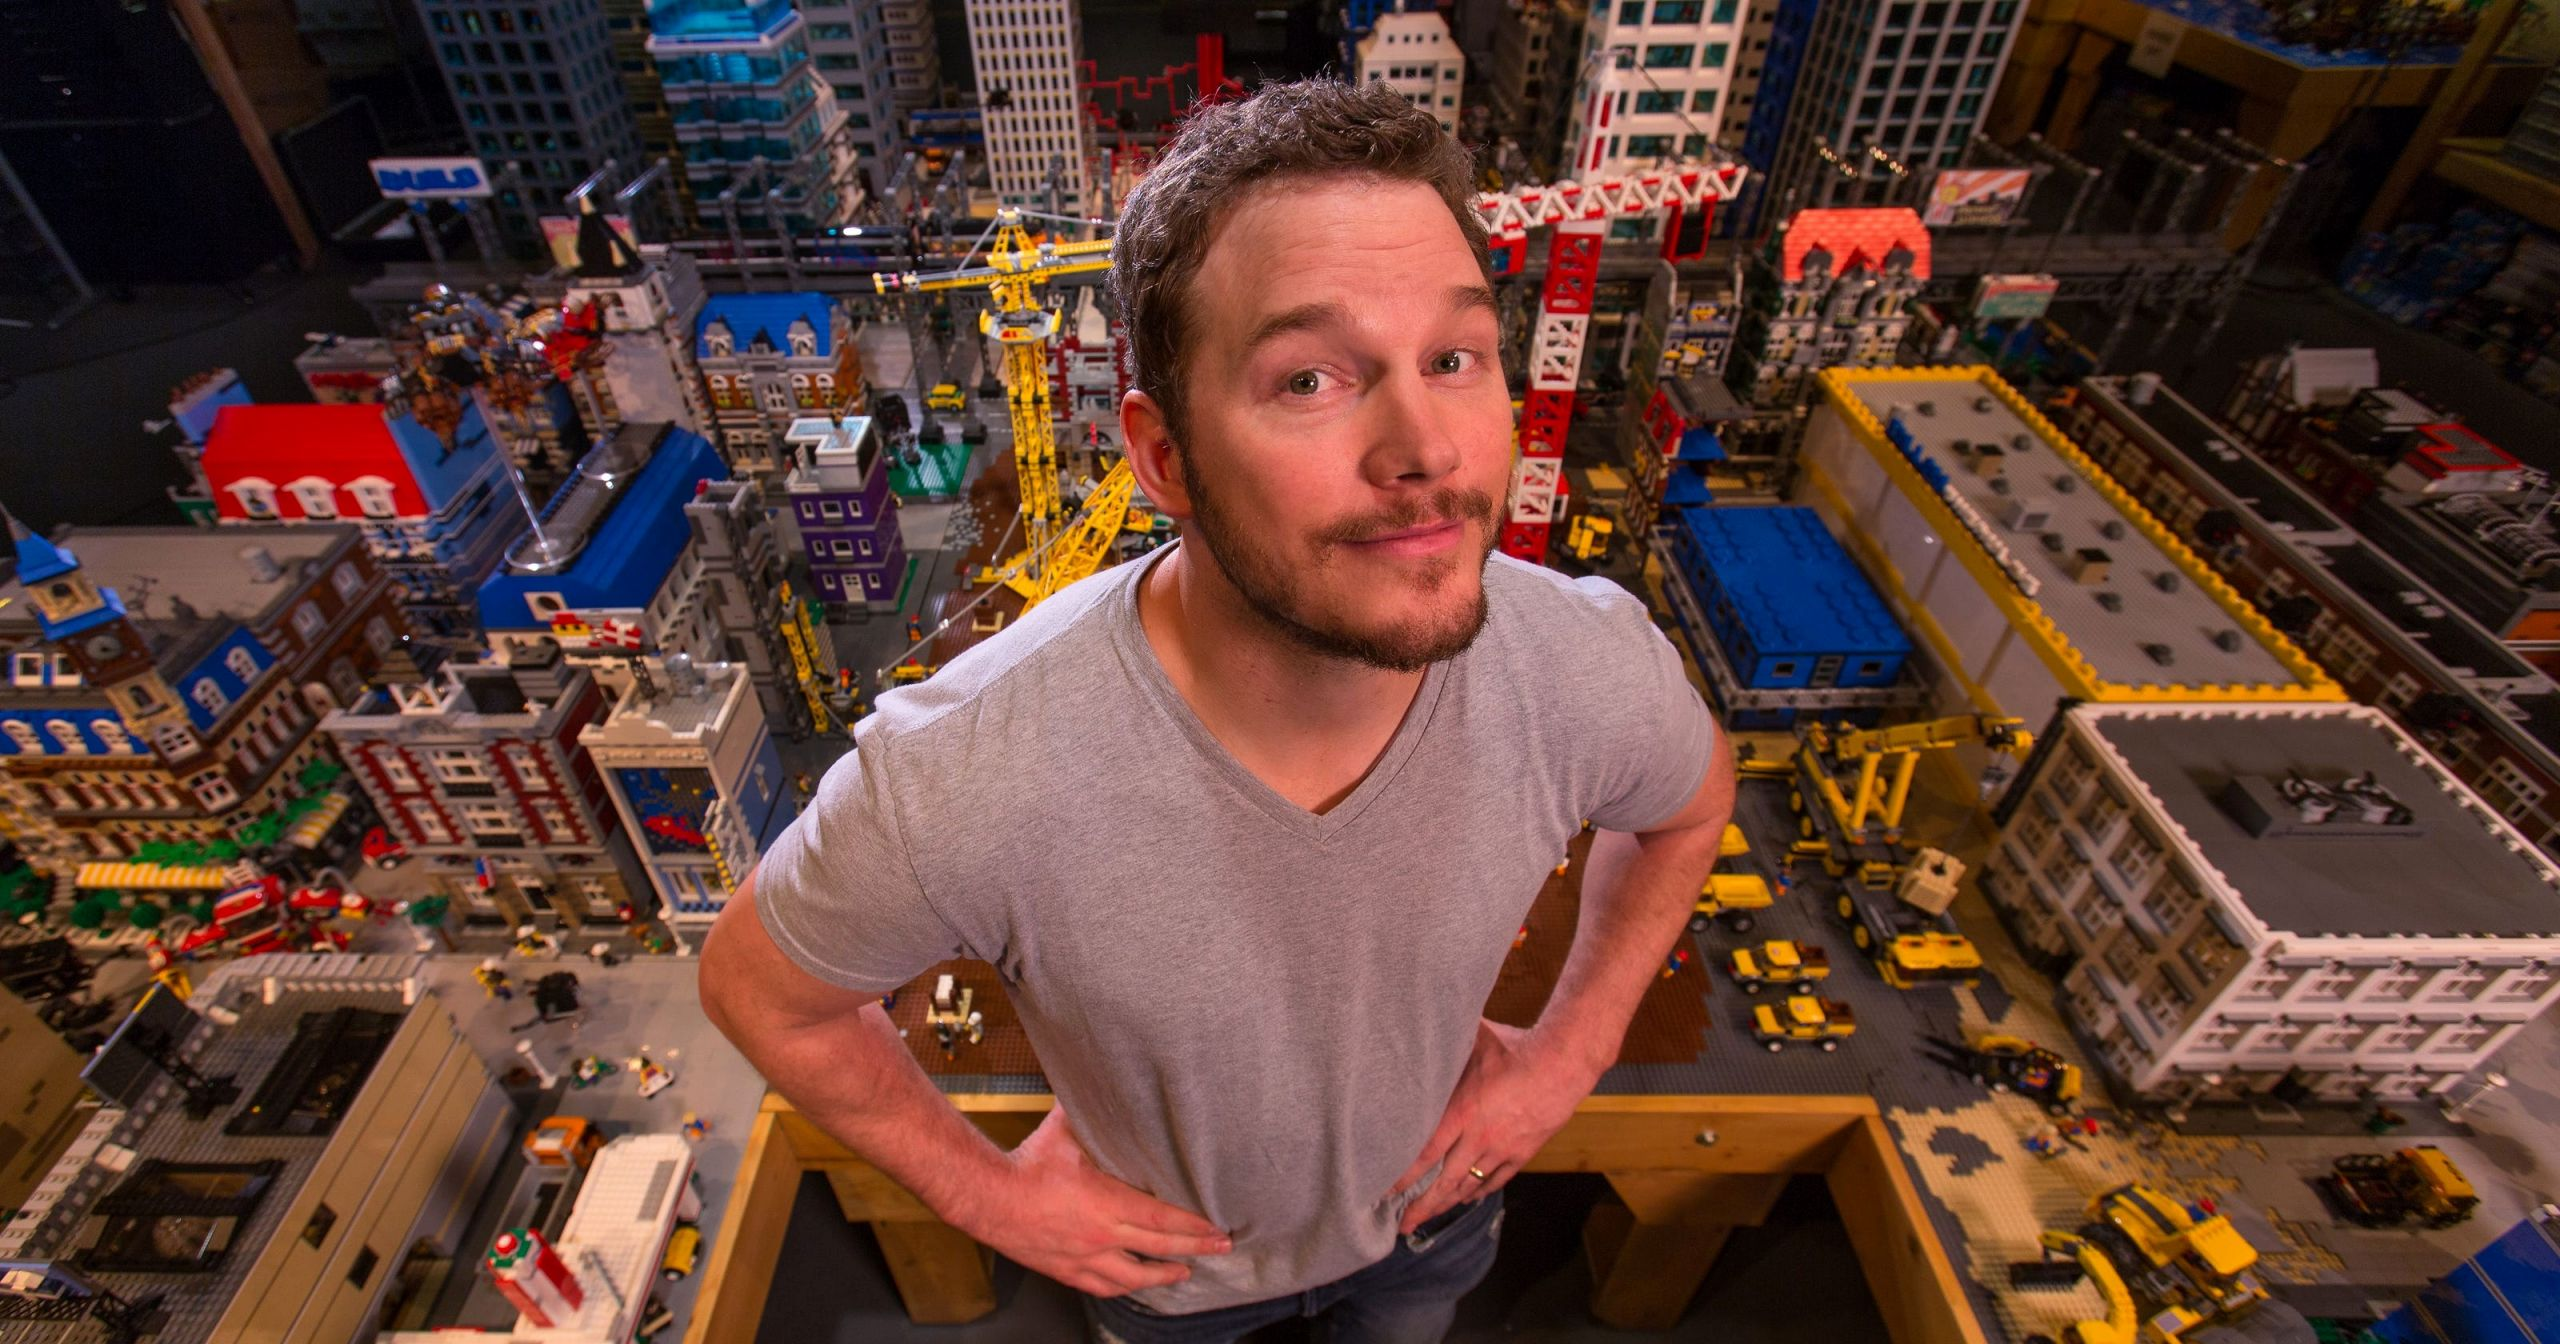 Man Of the Year Movie Online Inspirational Movie Star Of the Year Chris Pratt